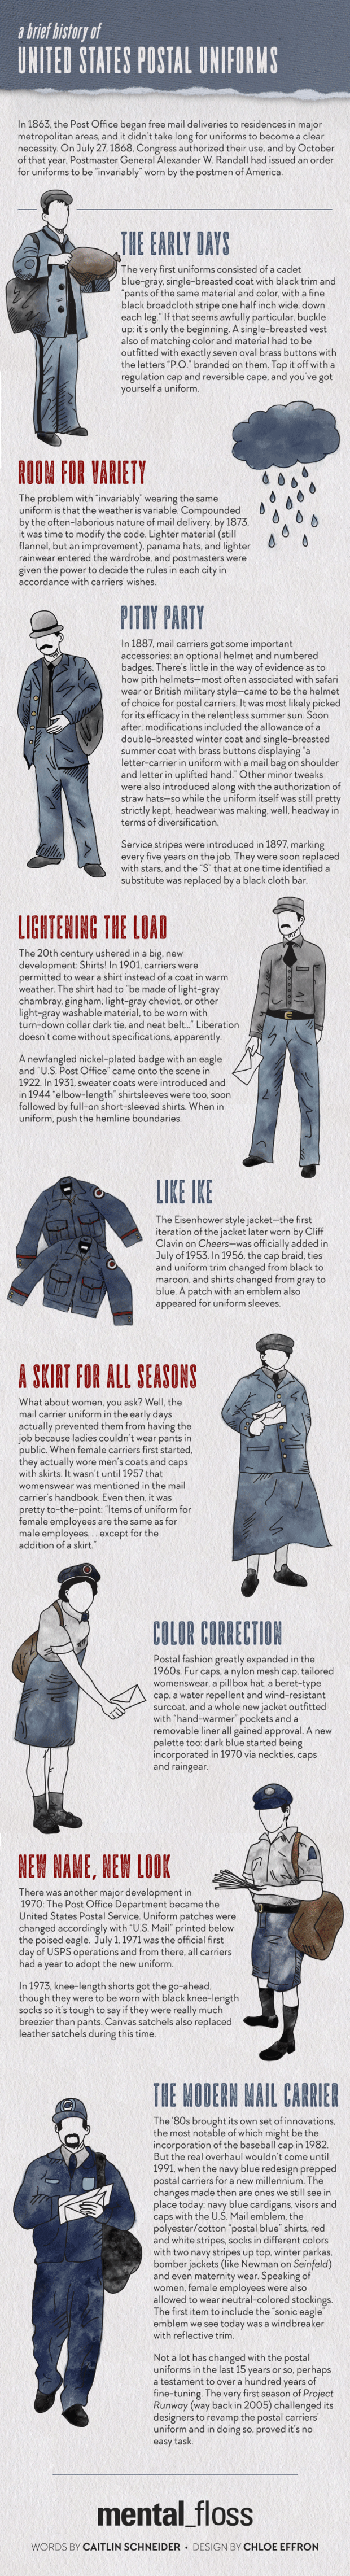 A Brief History Of United States Postal Uniforms Mental Floss